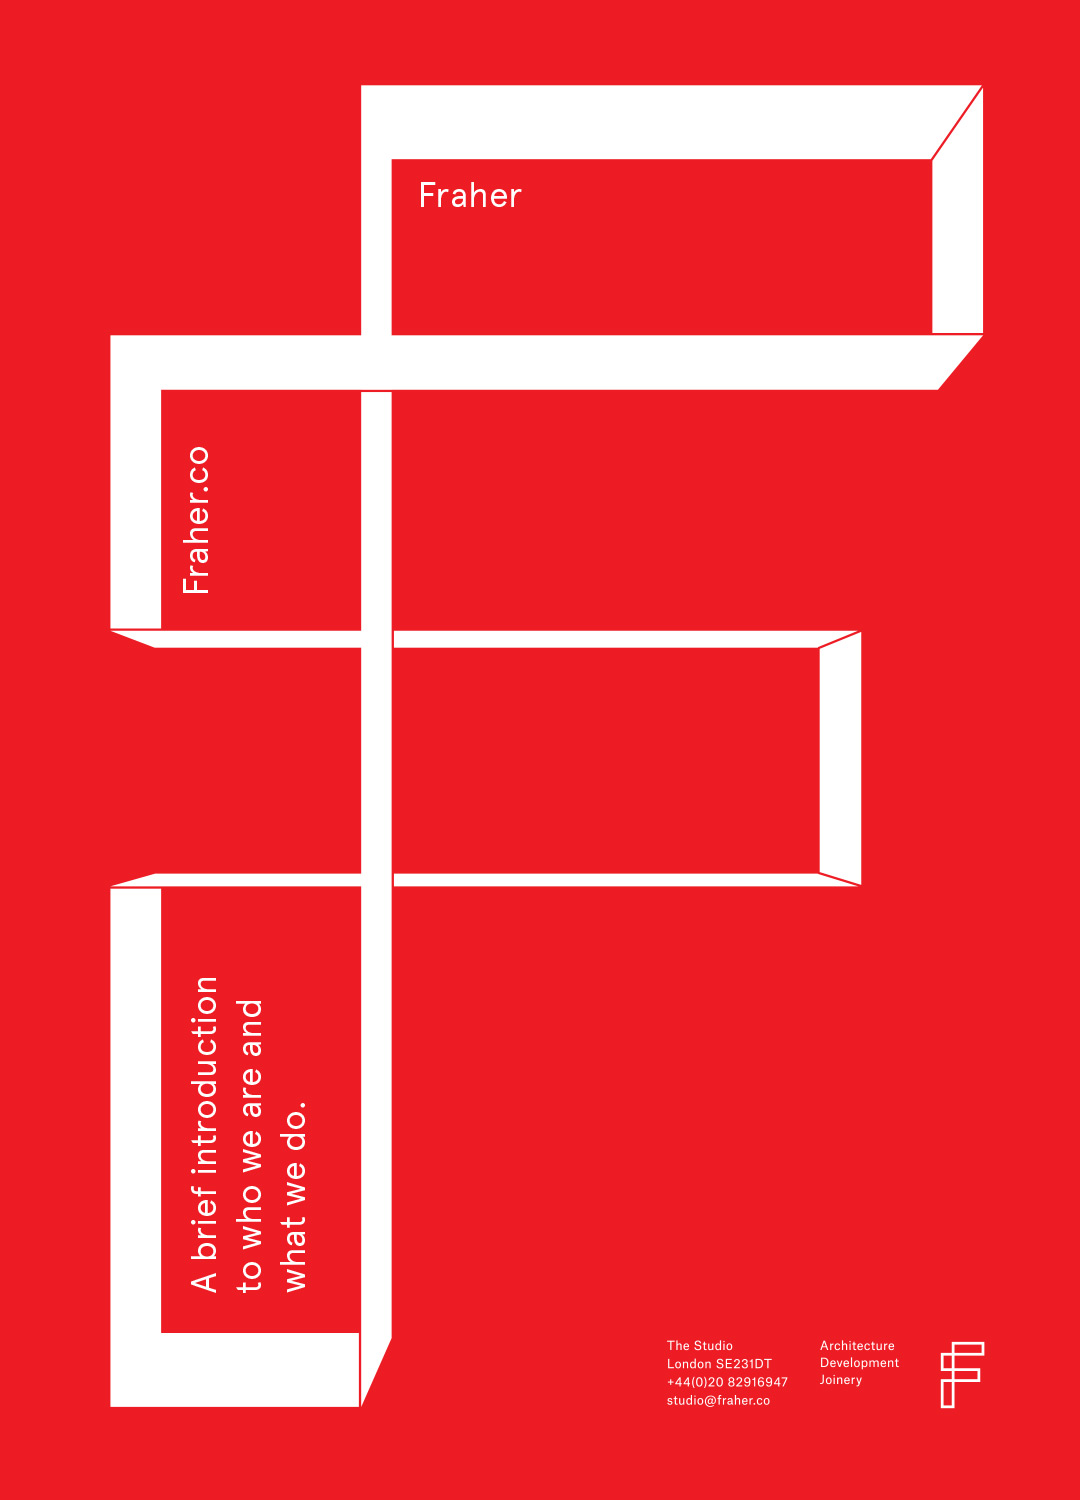 Fraher architects / Freytag Anderson (4)